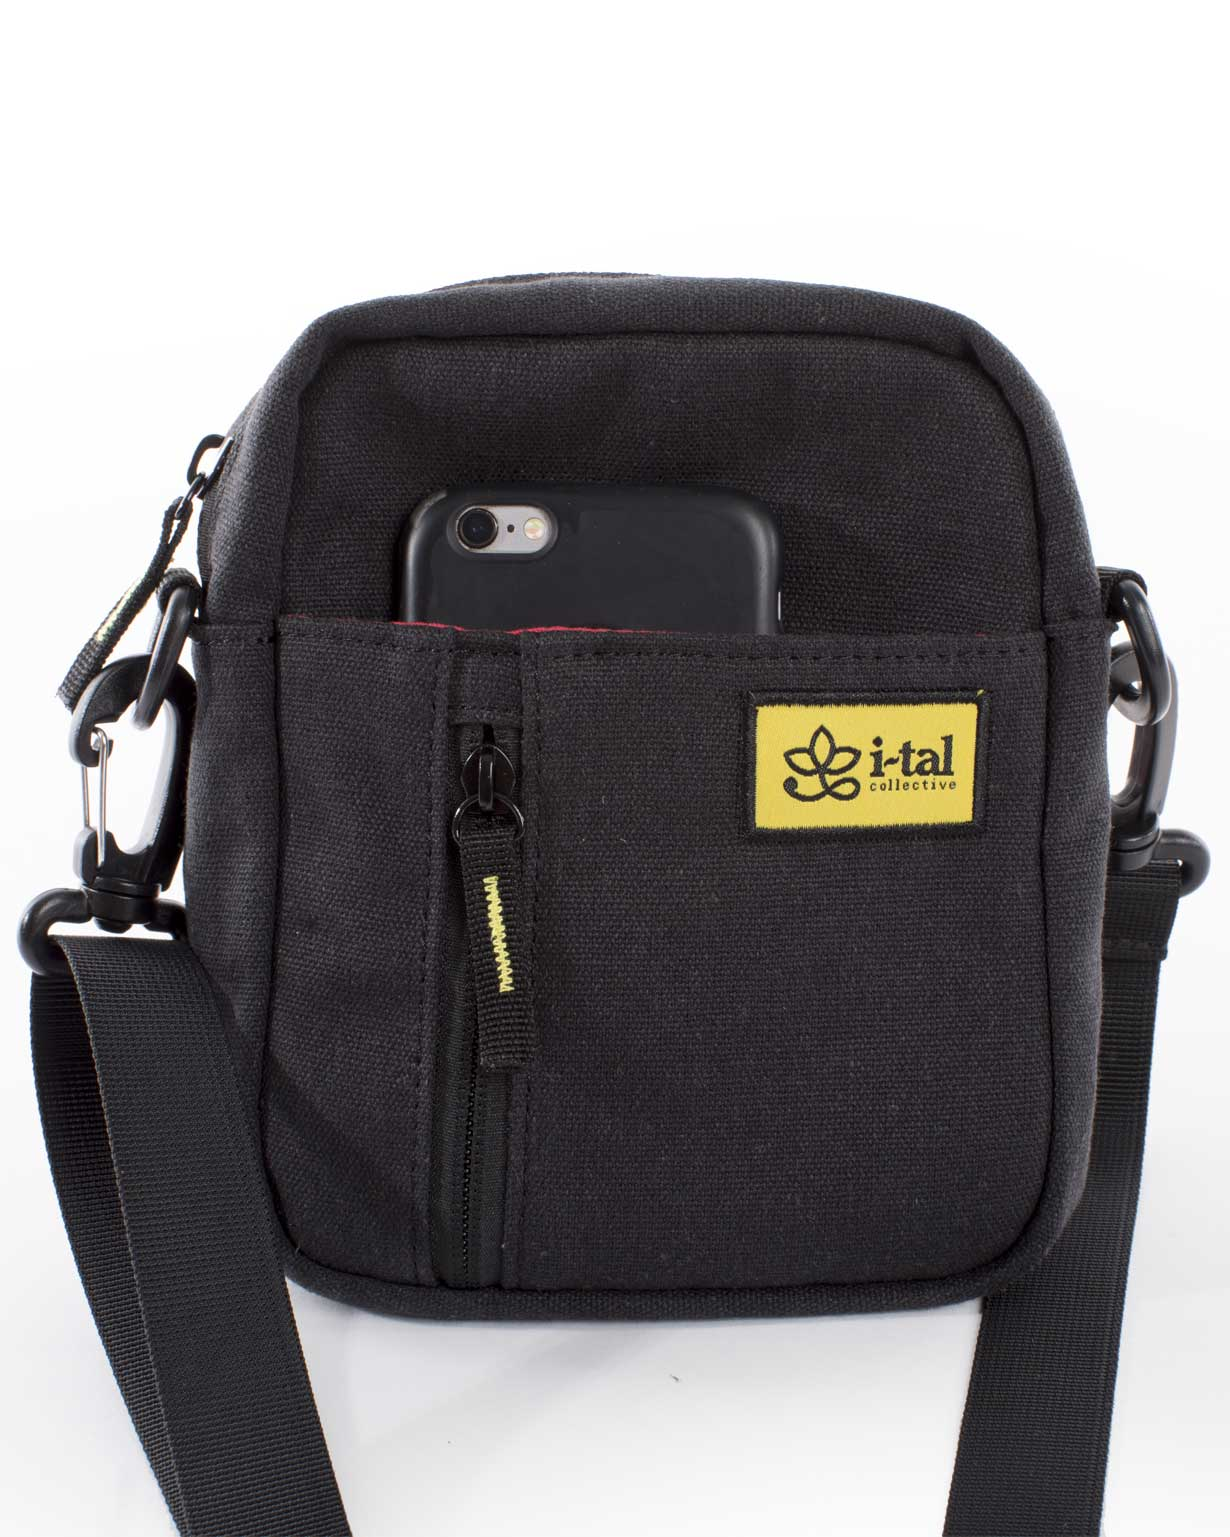 Essential Bag Black - Bolso Orgánico